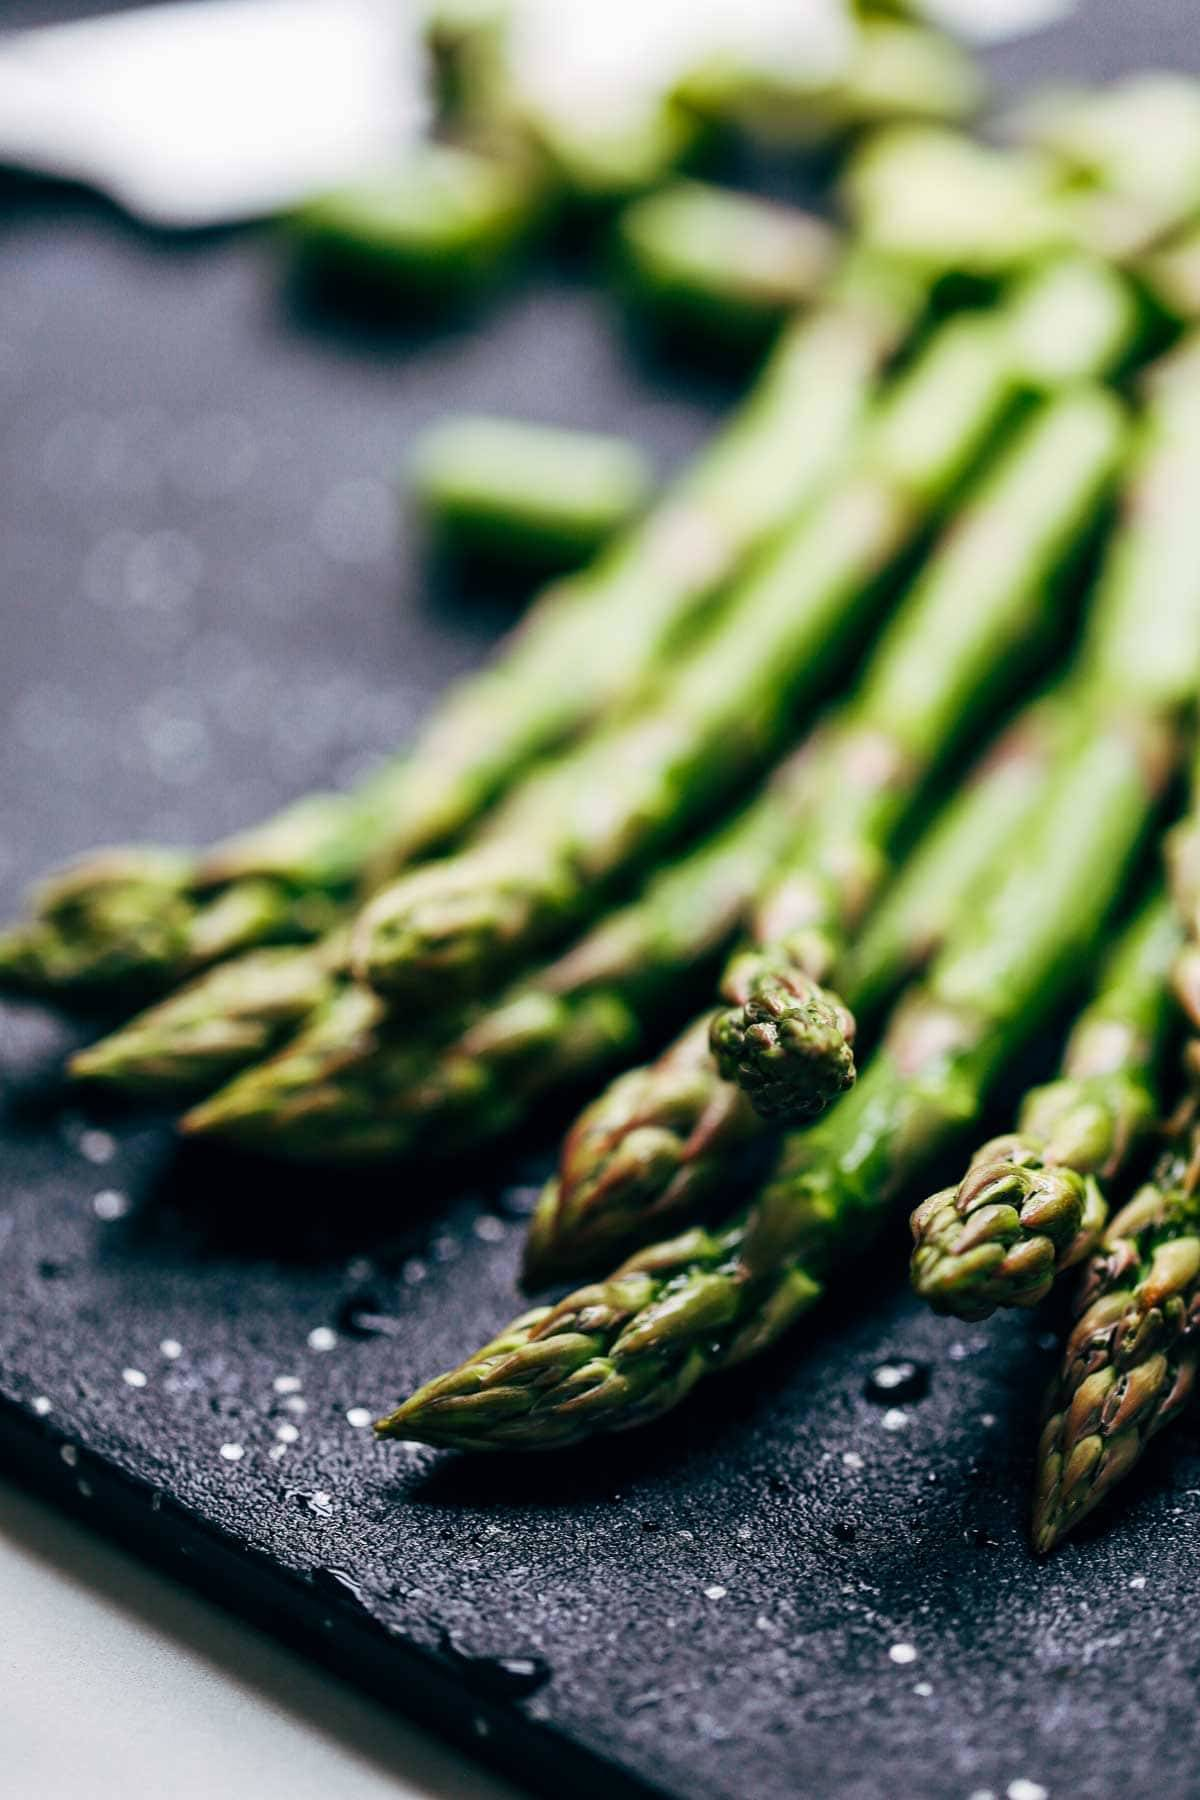 Asparagus on a cutting board.